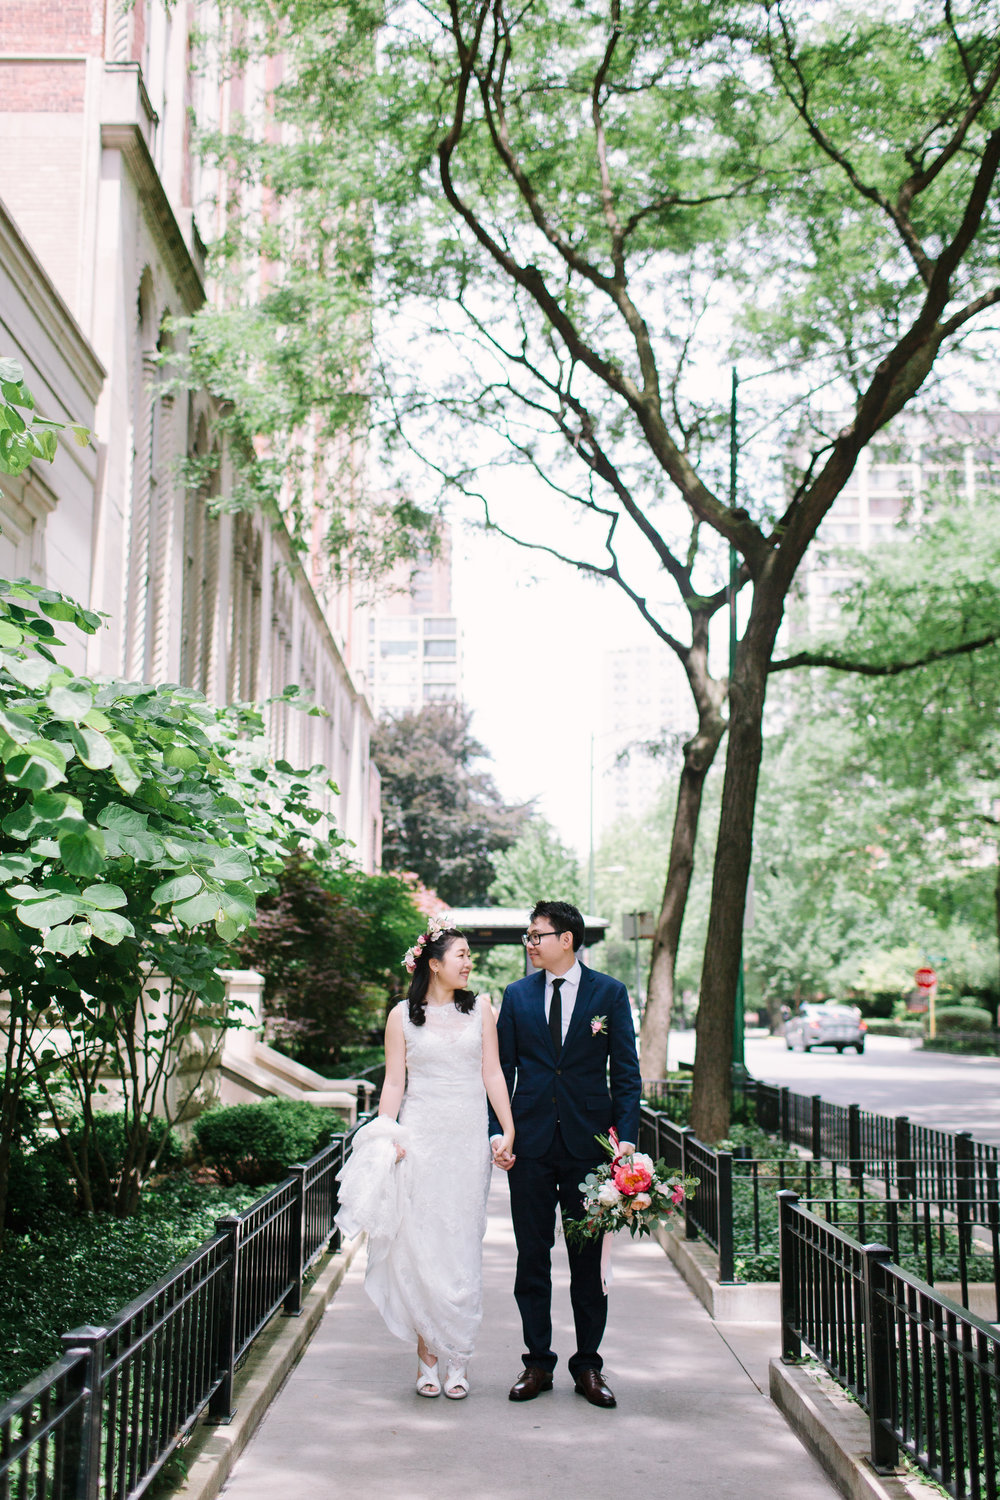 Nicodem Creative-Wang Wedding-Public Hotel Chicago-11.jpg